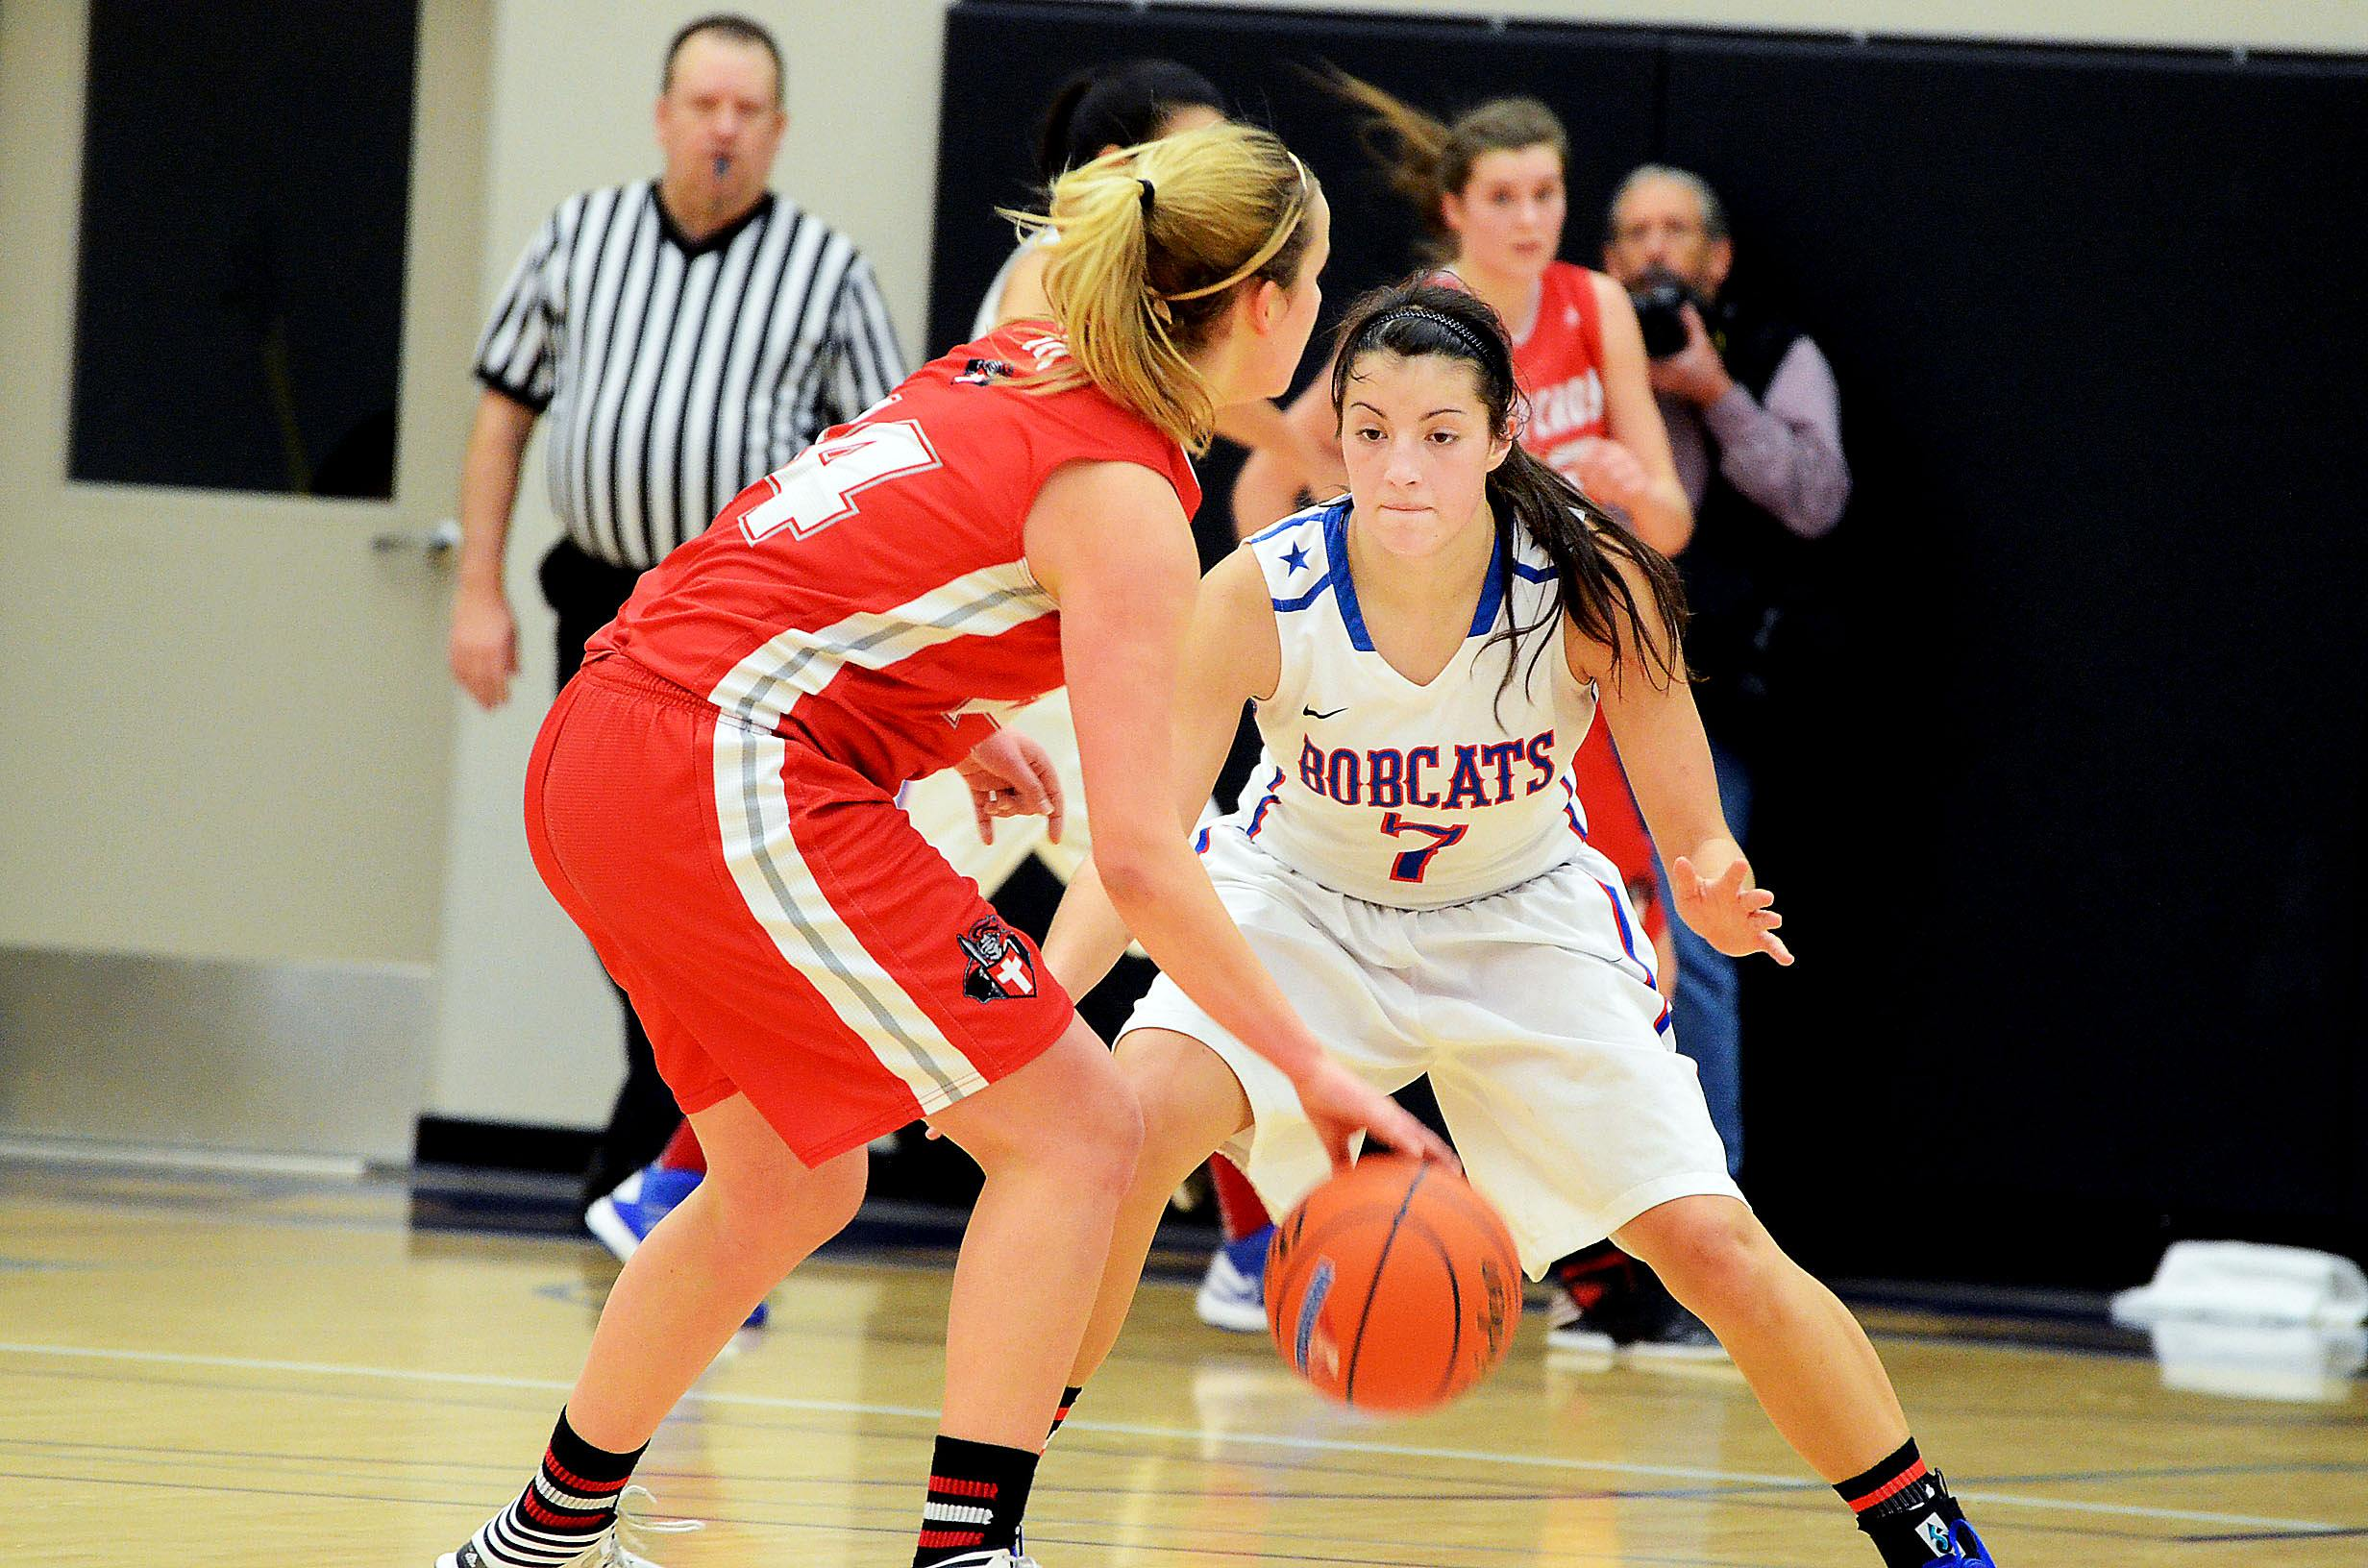 Crusaders tame Bobcats in Valley title game